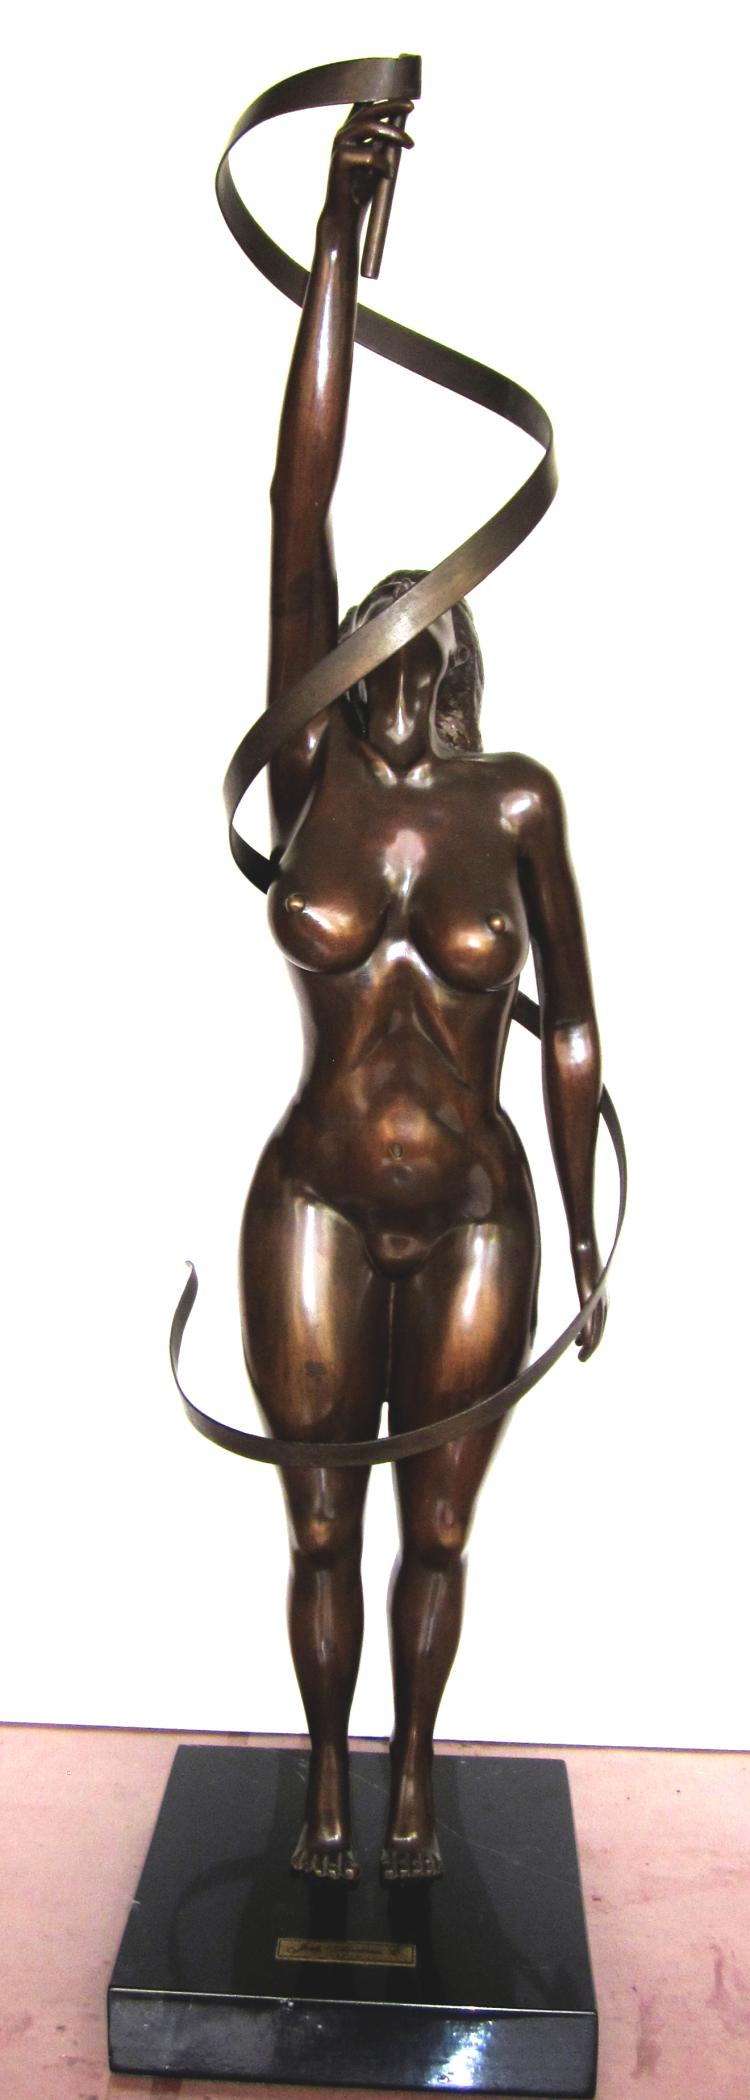 Bronze Cast Sculpture by Alvarez